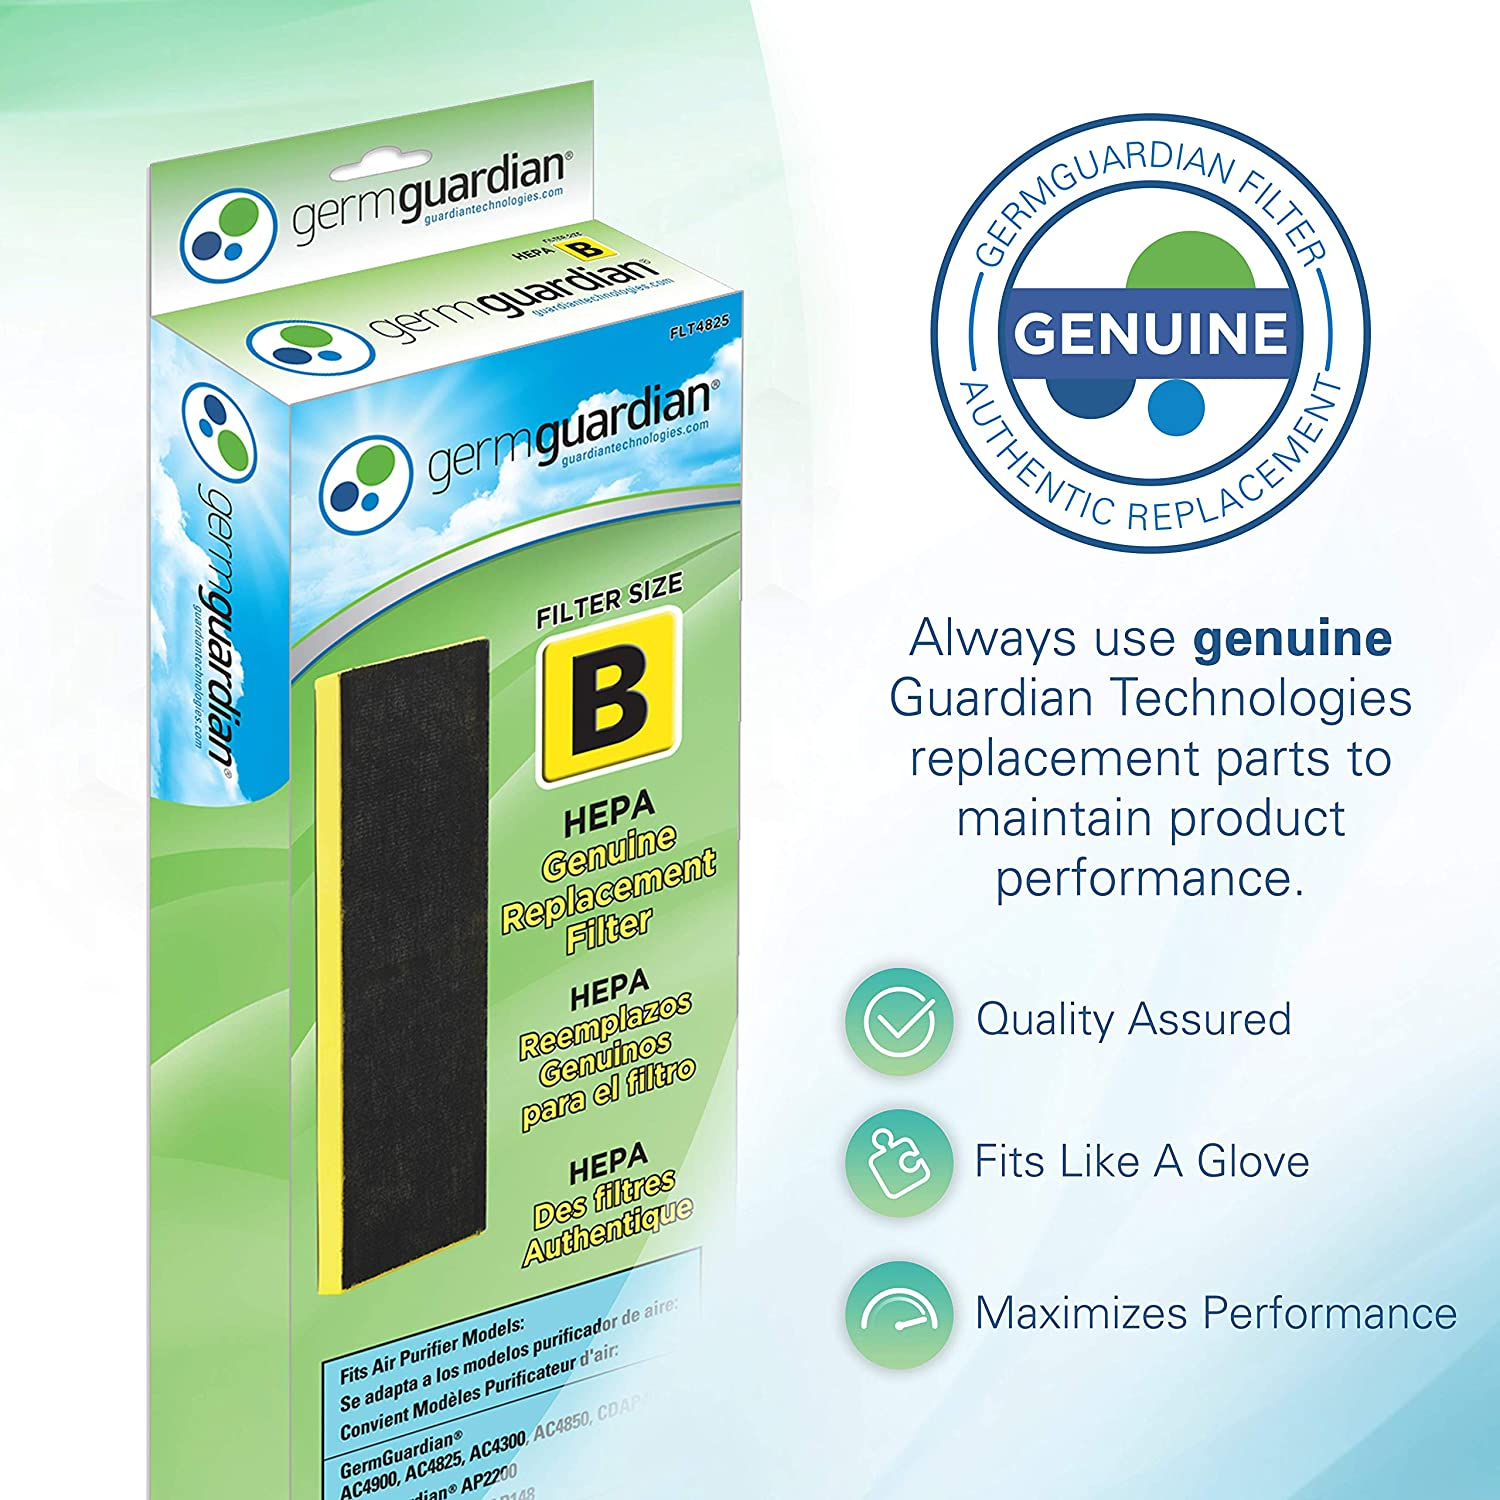 Germ Guardian FLT4825 True HEPA GENUINE Air Purifier Replacement Filter B for GermGuardian AC4300BPTCA, AC4900CA, AC4825, AC4825DLX, AC4850PT, CDAP4500BCA, CDAP4500WCA, and More